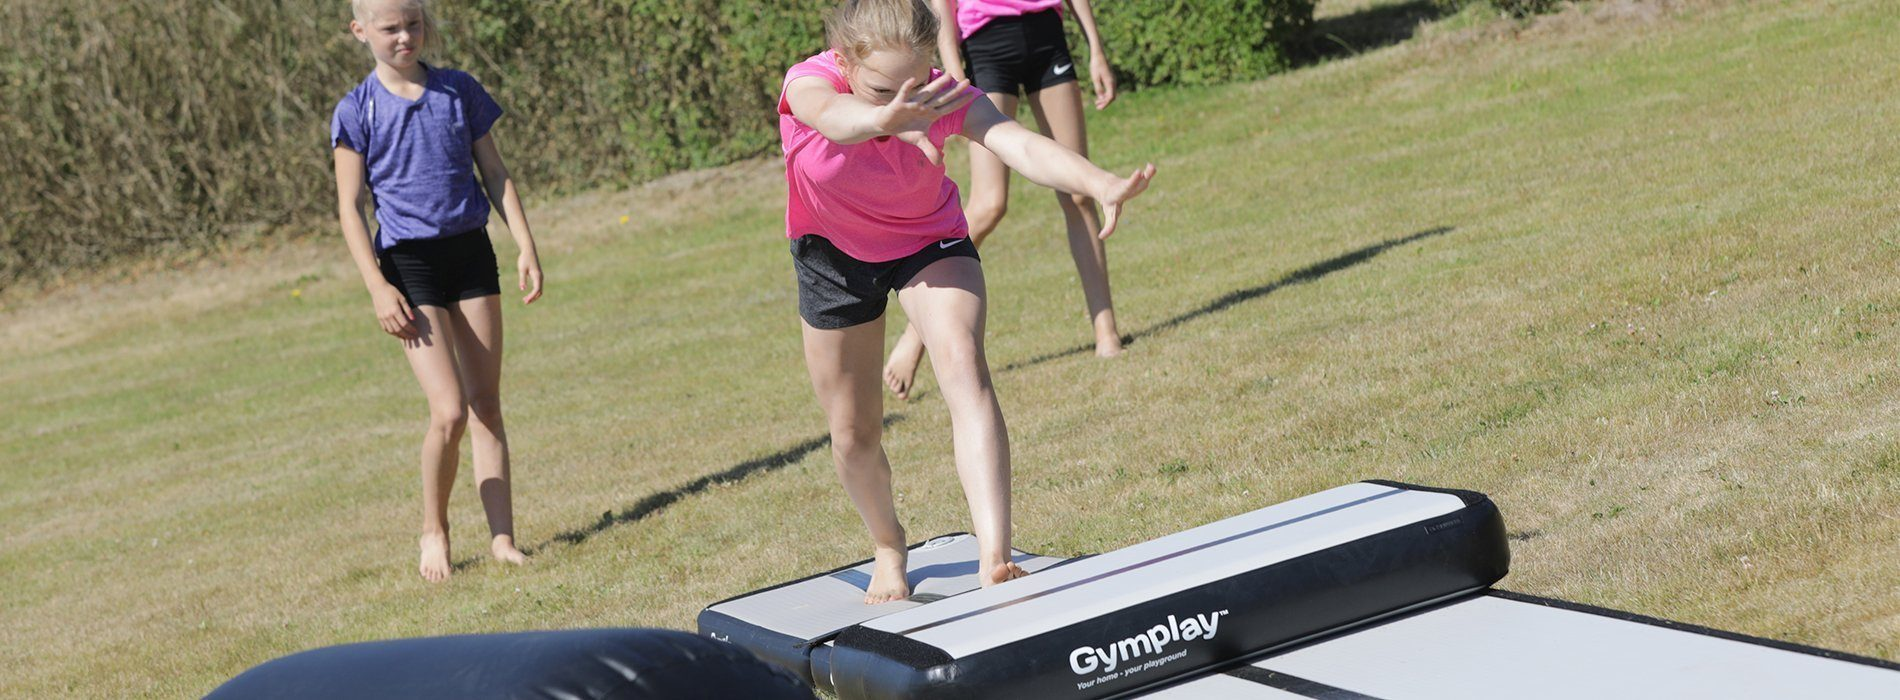 GymPlay H15 airtrack with double rail the toughest airtrack on the market